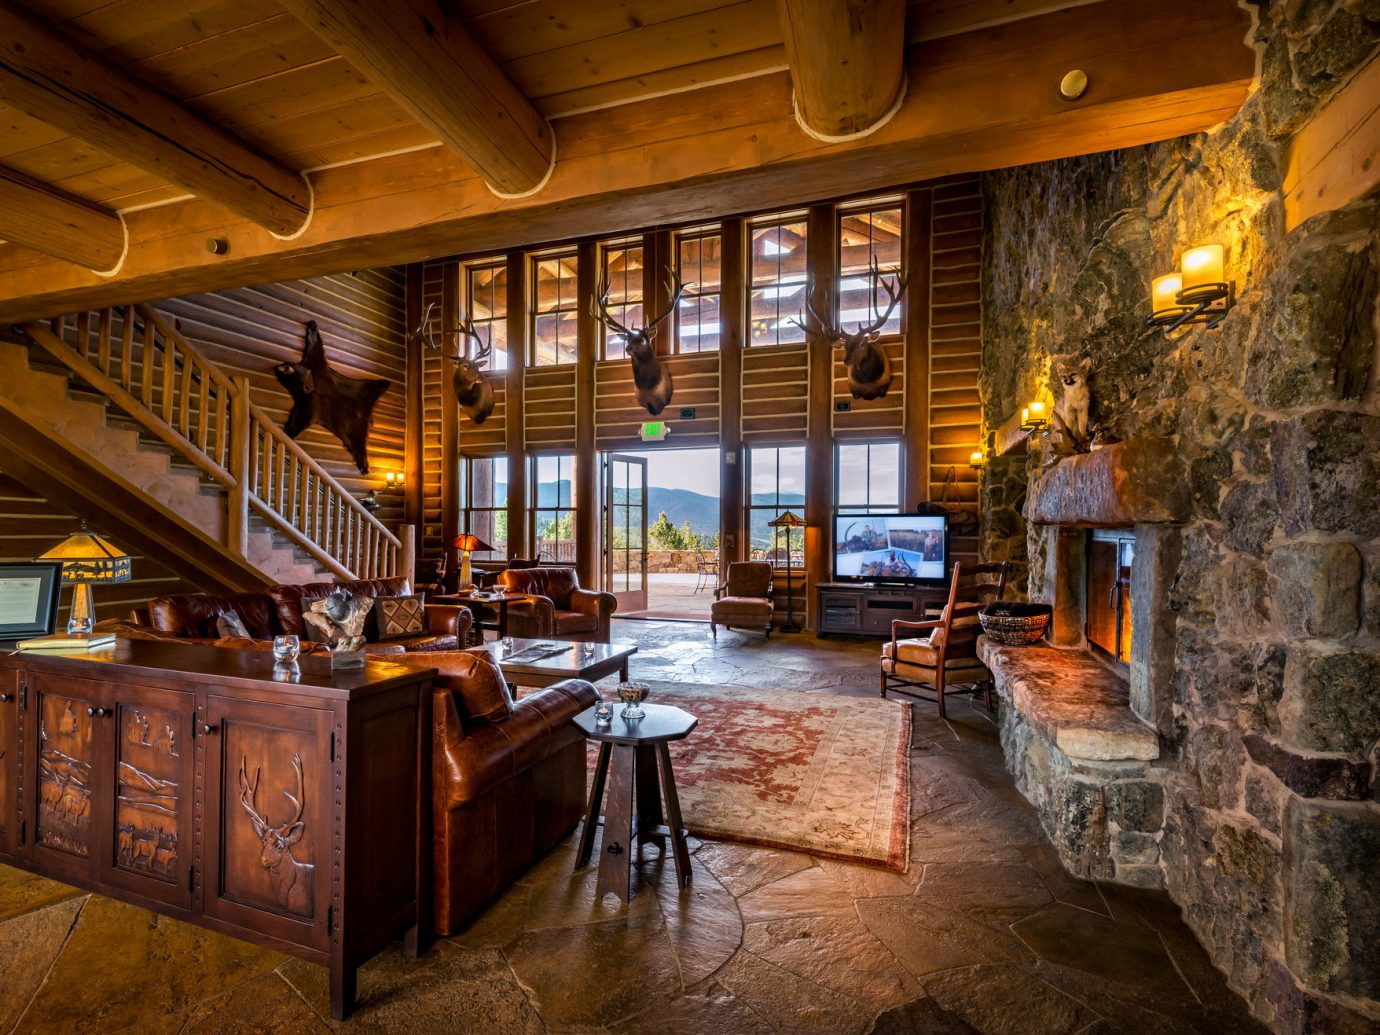 ambient lighting Cabin calm cozy extravagant Fireplace isolation Lodge log cabin Lounge Luxury Mountains Nature Outdoors remote Rustic serene Trip Ideas view warm indoor ceiling room estate building house home interior design wood restaurant Bar tavern furniture stone